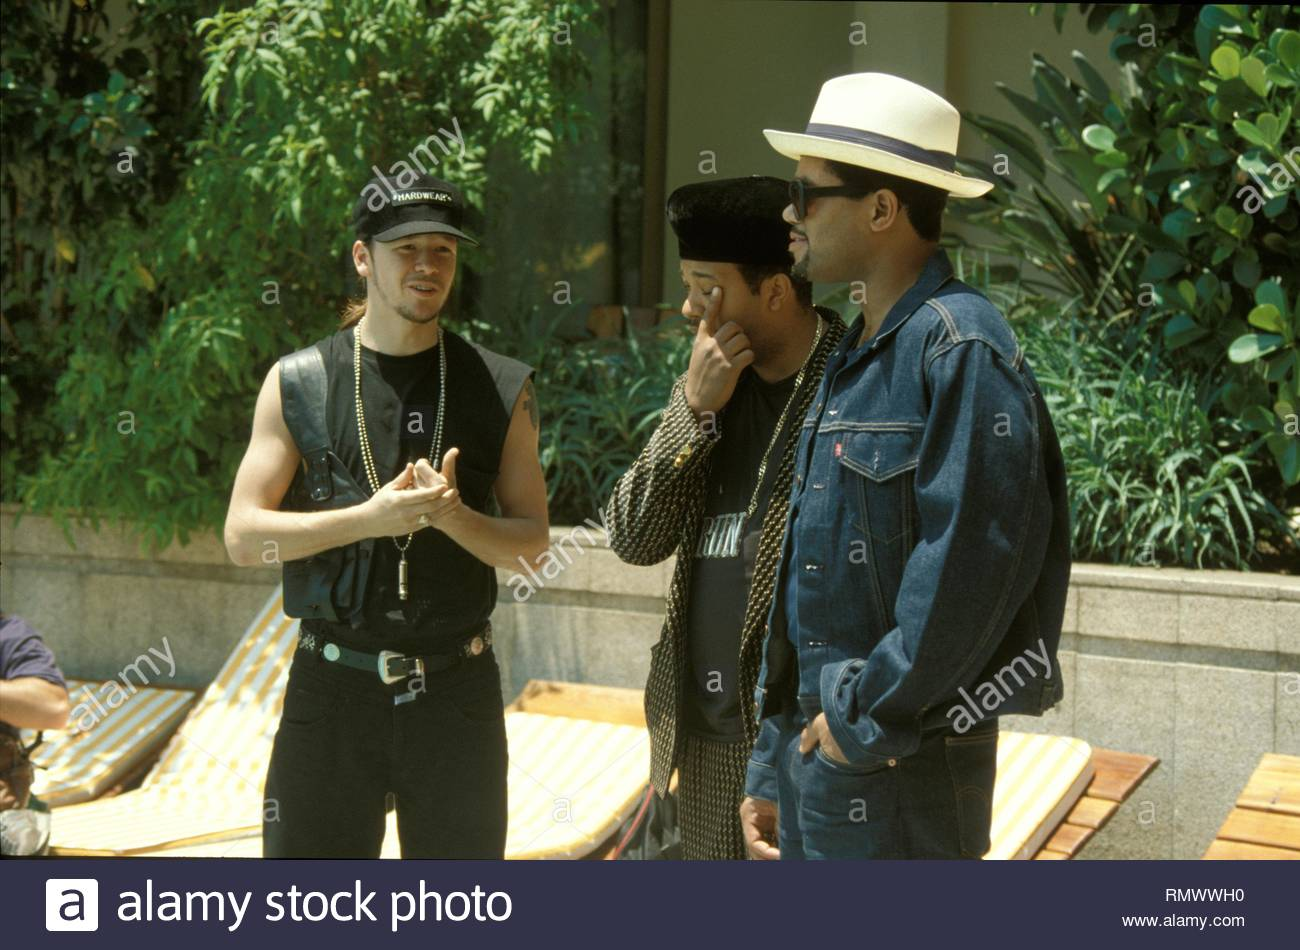 Donnie Wahlberg of New Kids on the Block is shown talking with Run DMC at the Rio Palace Hotel during Rock in Rio II. - Stock Image